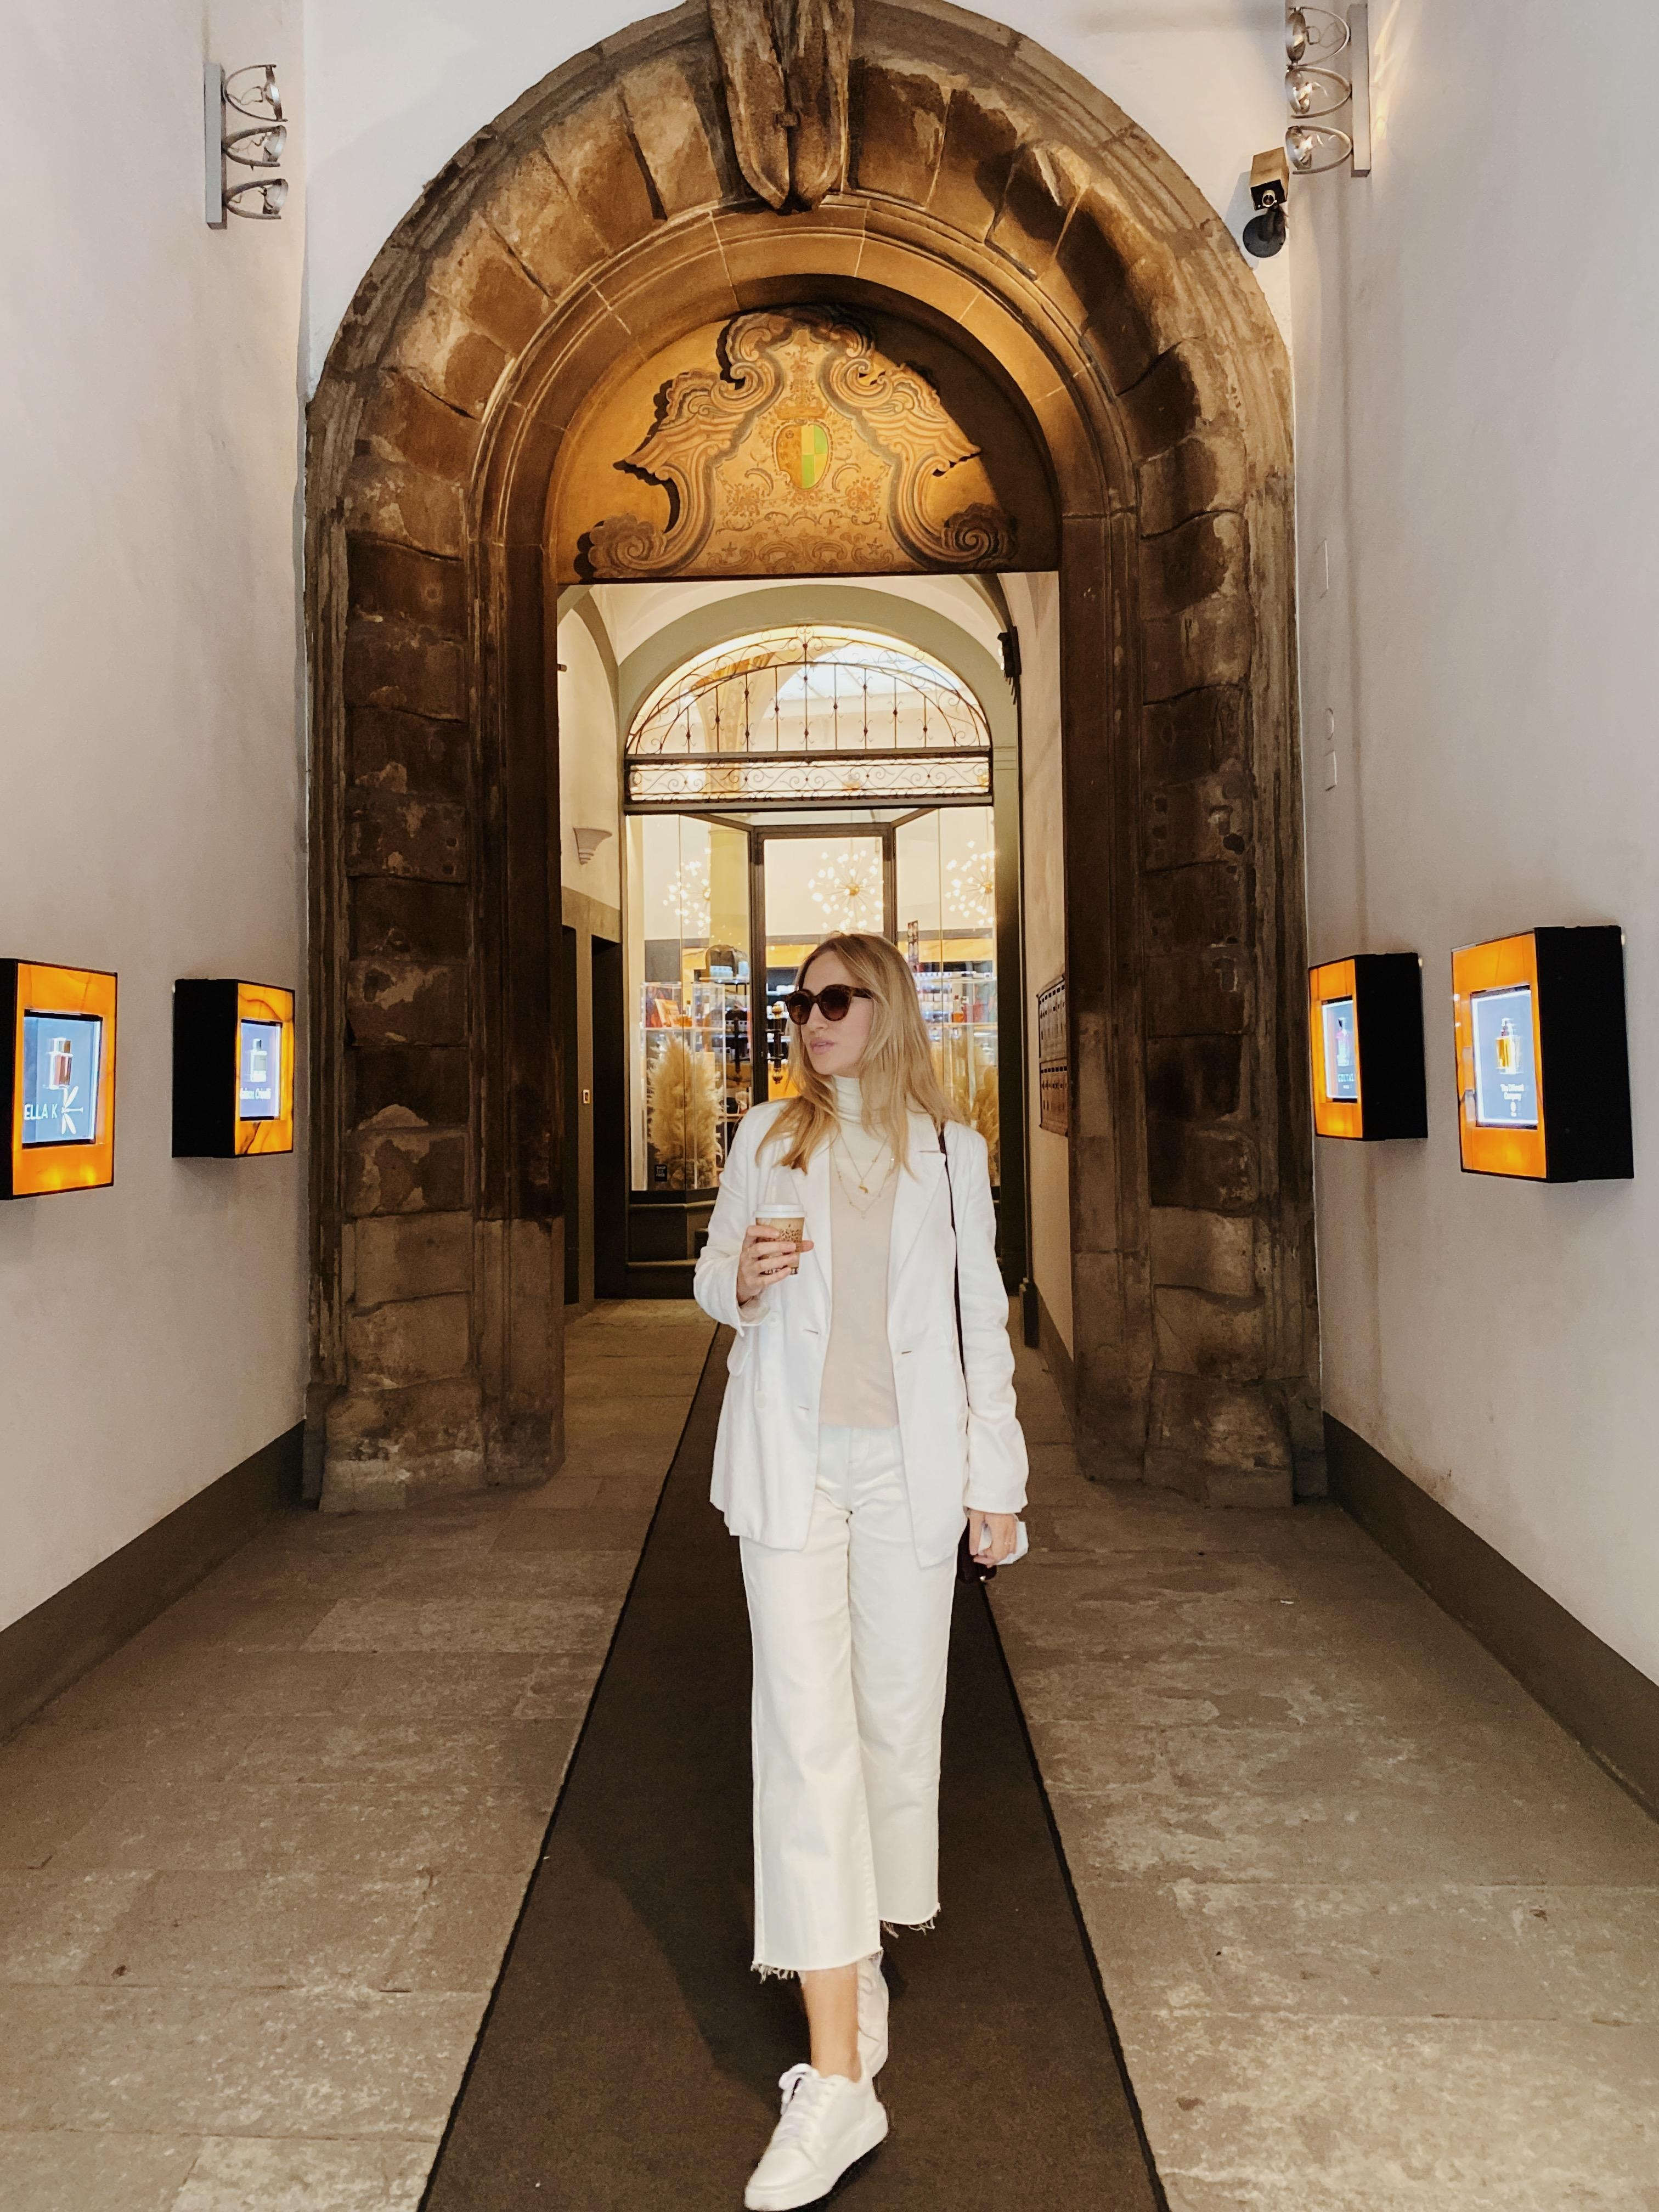 All white in Florence ✨ #florenz #toskana #outfit #allwhite #fashionlove